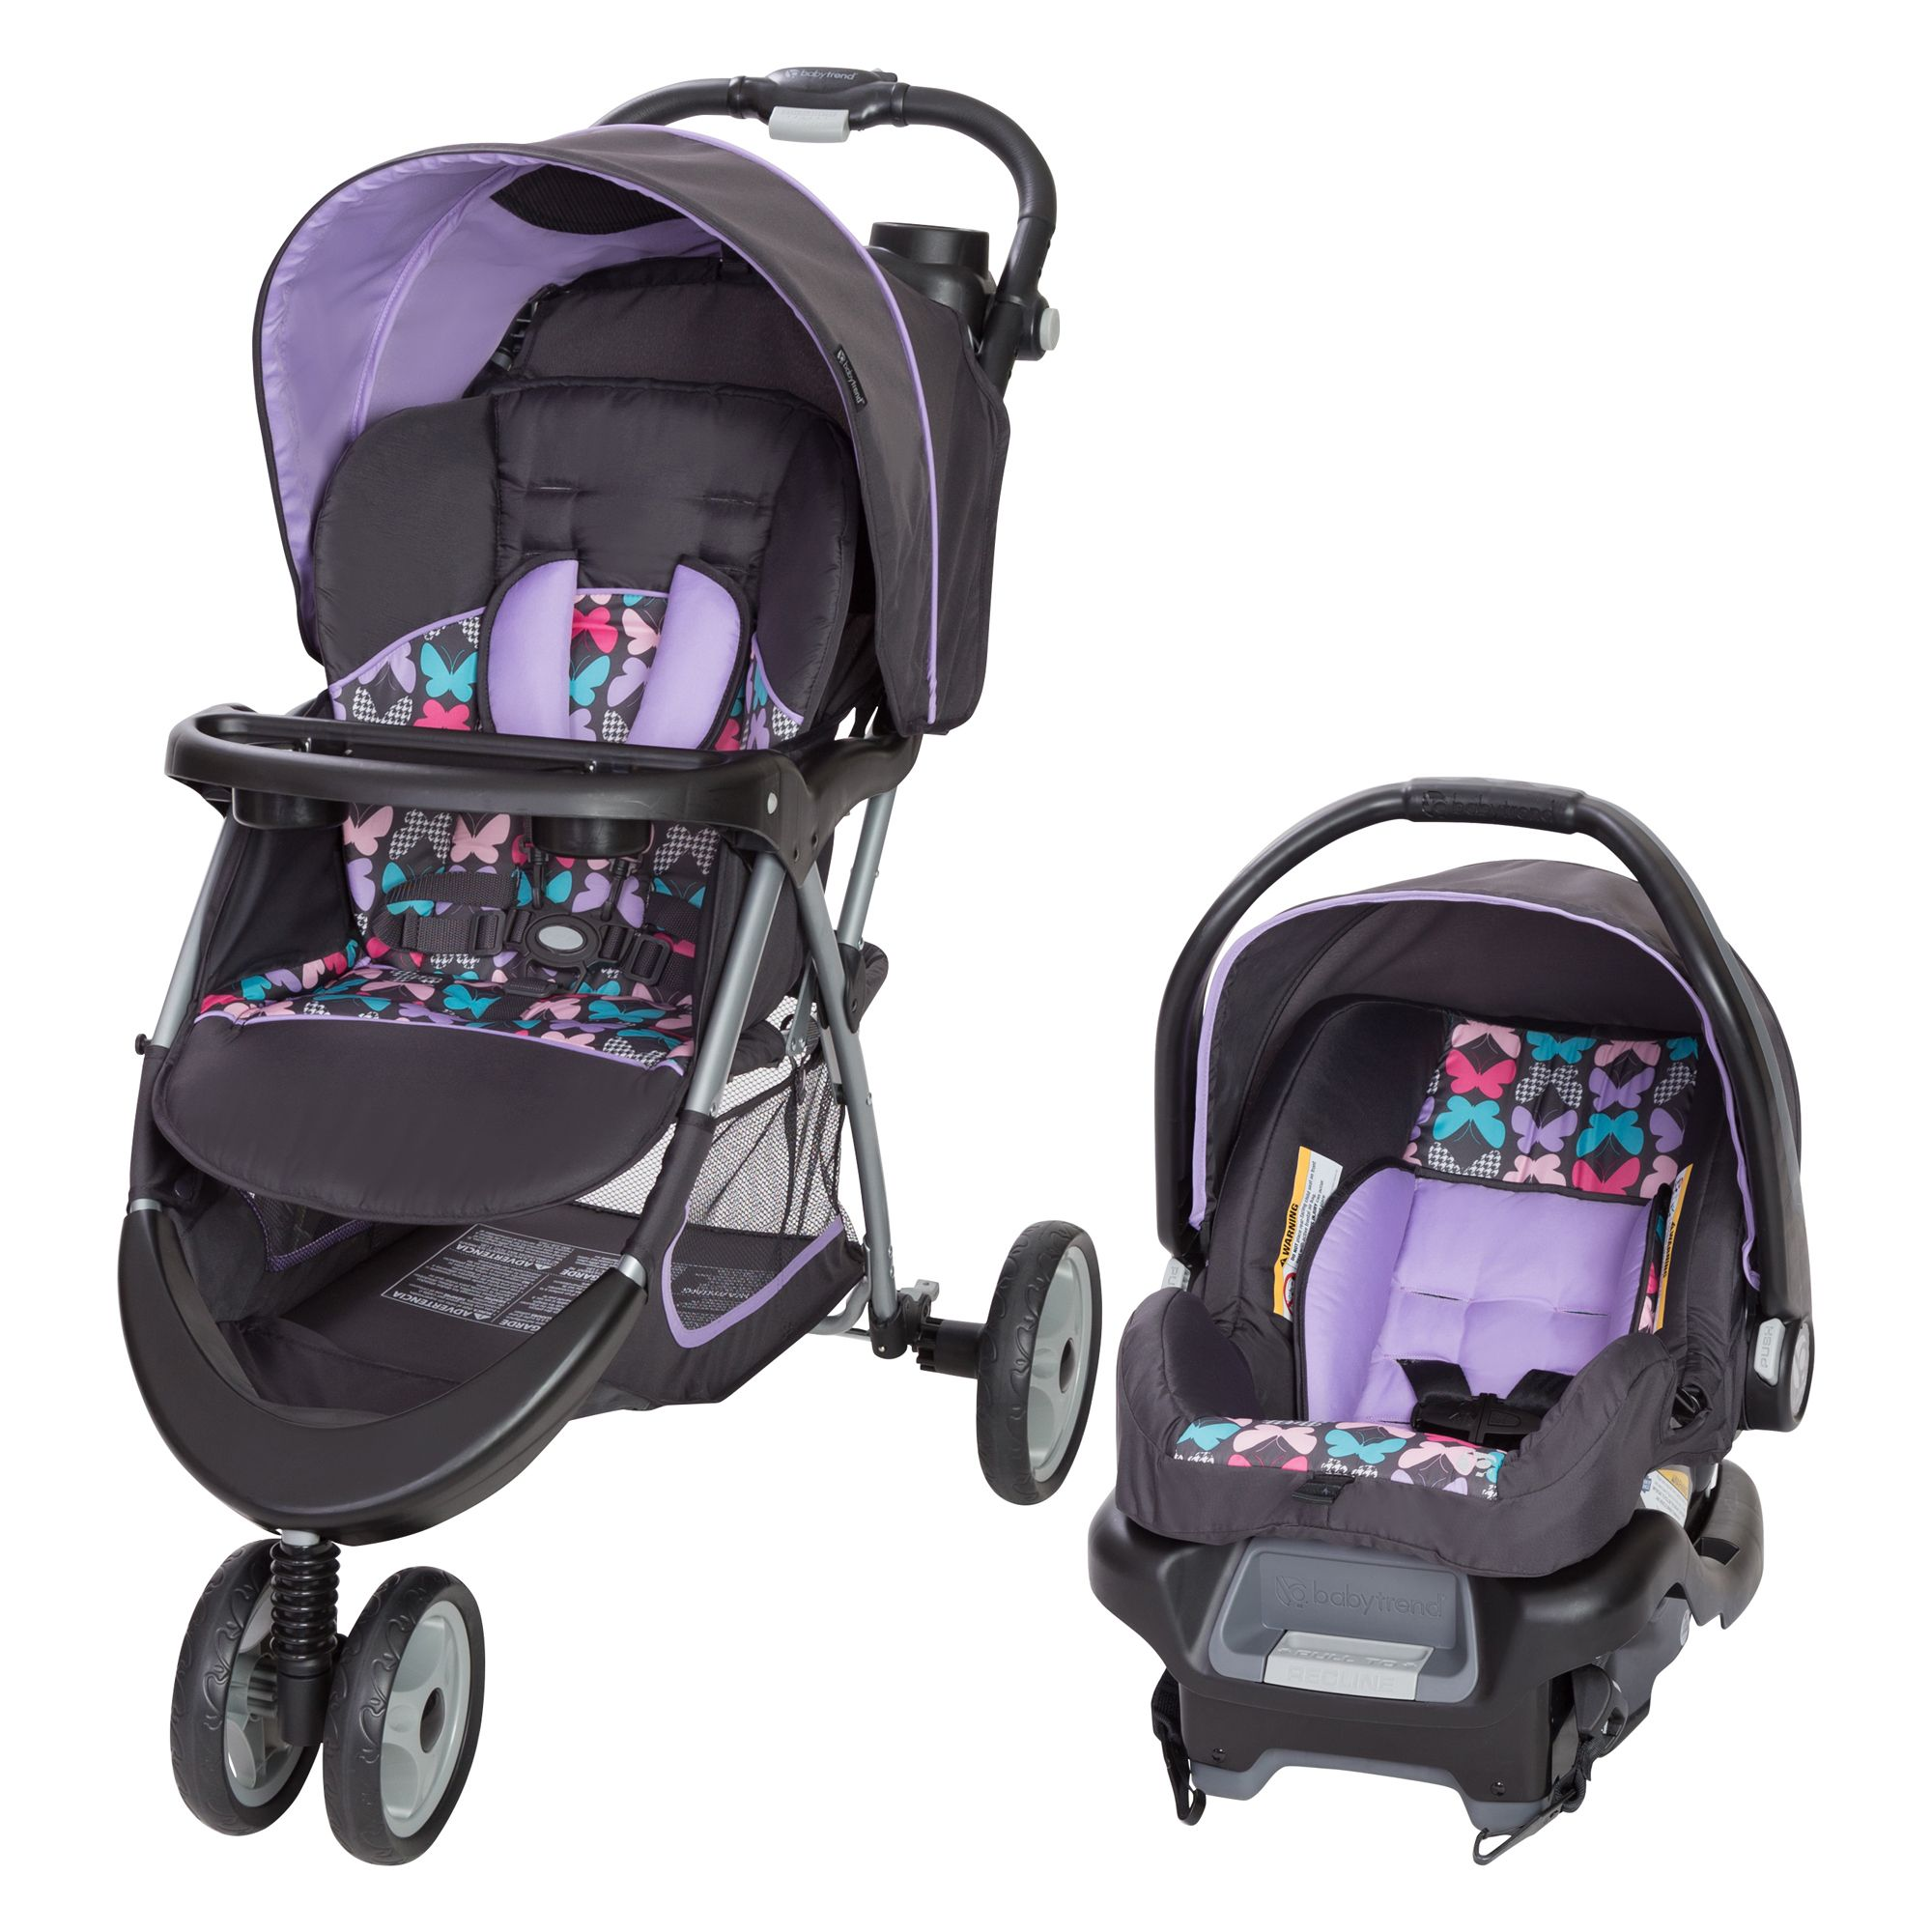 18++ Baby trend stroller and carseat set ideas in 2021